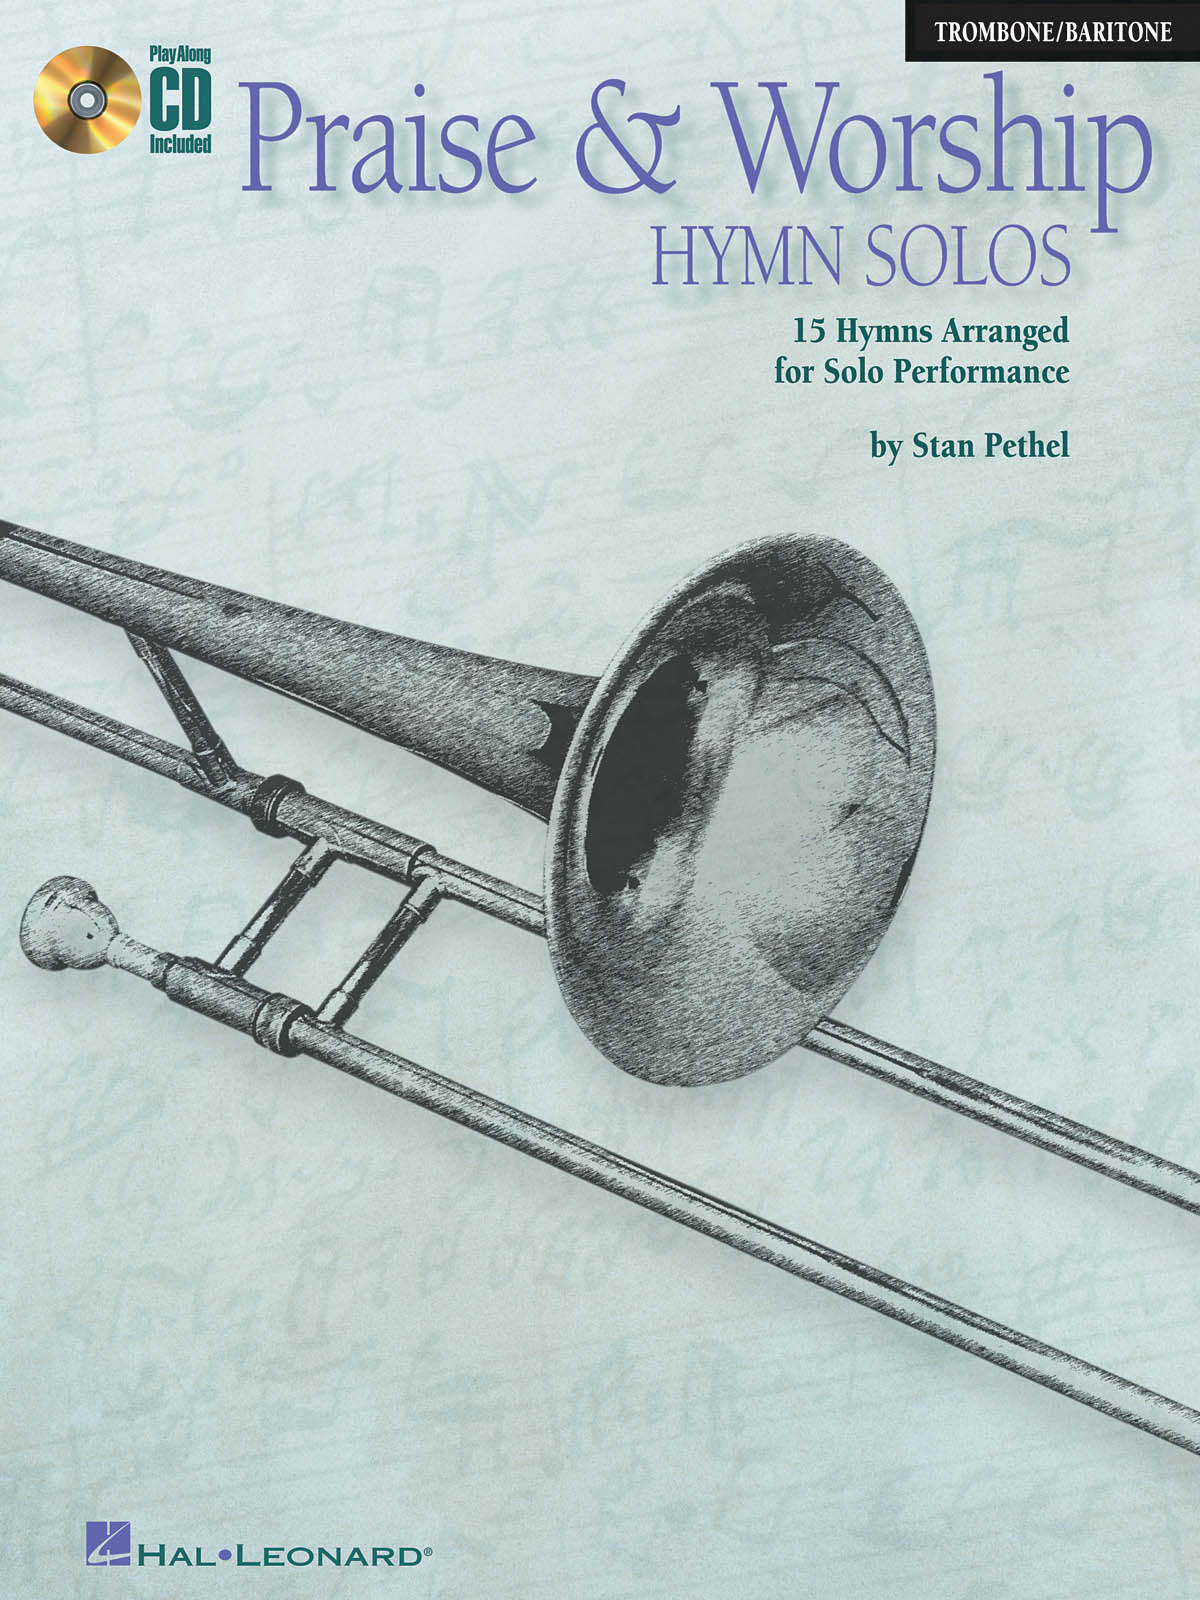 Praise and Worship Hymn Solos - Trombone/Baritone: Trombone Solo: Instrumental